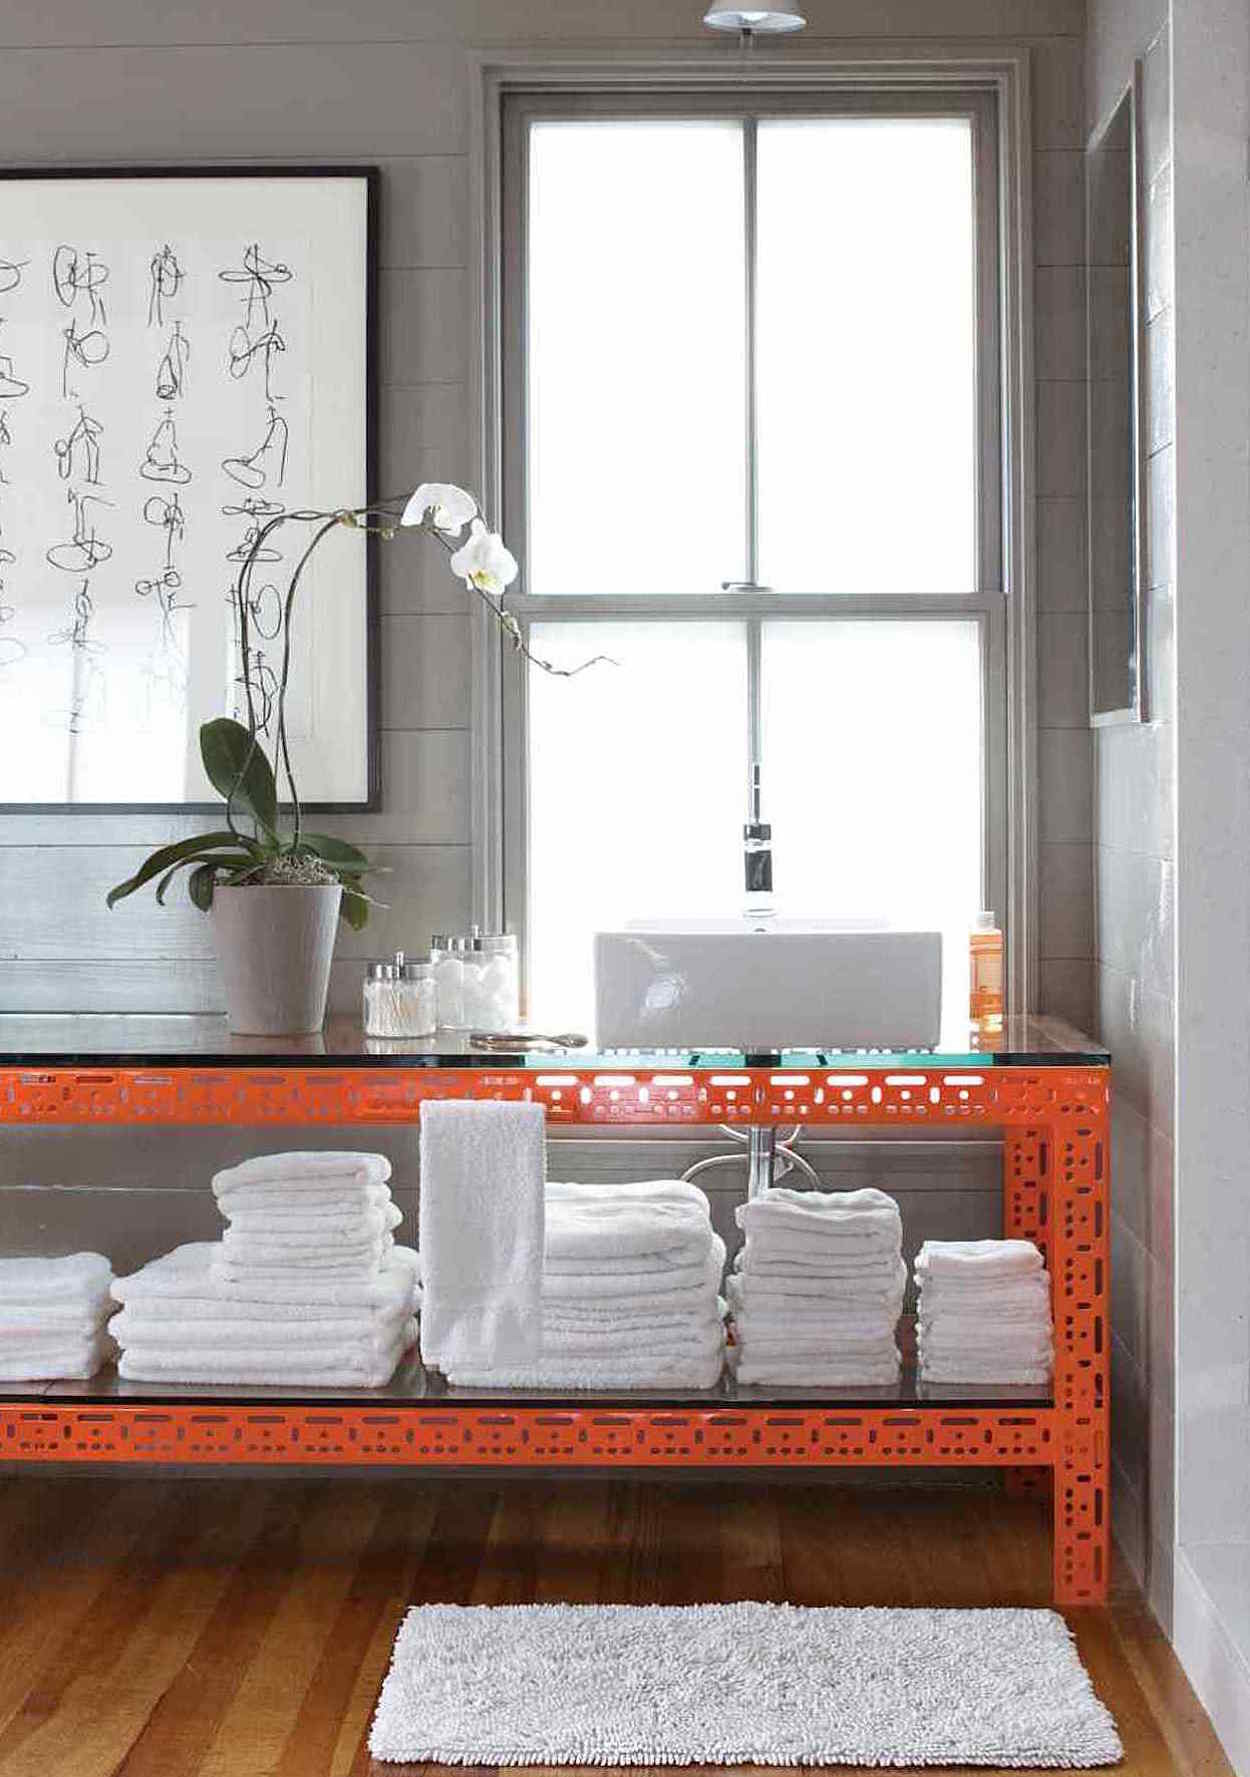 Looking For Bathroom Design Inspiration? Here Are Some Of Our Favorite  Ideas | Martha Stewart